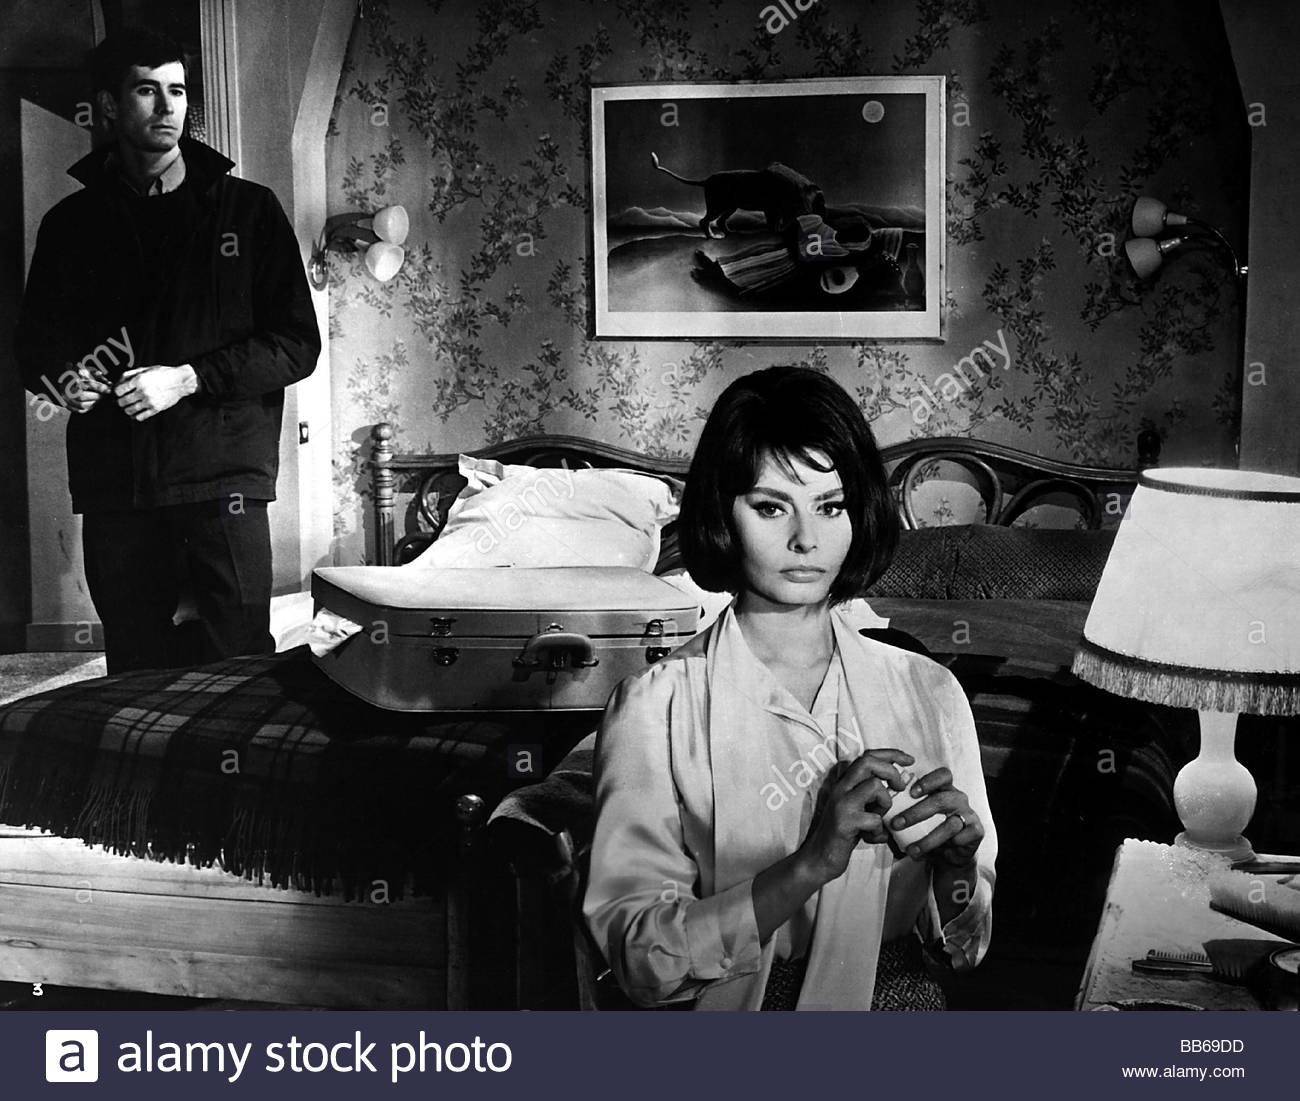 anthony perkins director stock photos anthony perkins director stock images page 2 alamy. Black Bedroom Furniture Sets. Home Design Ideas